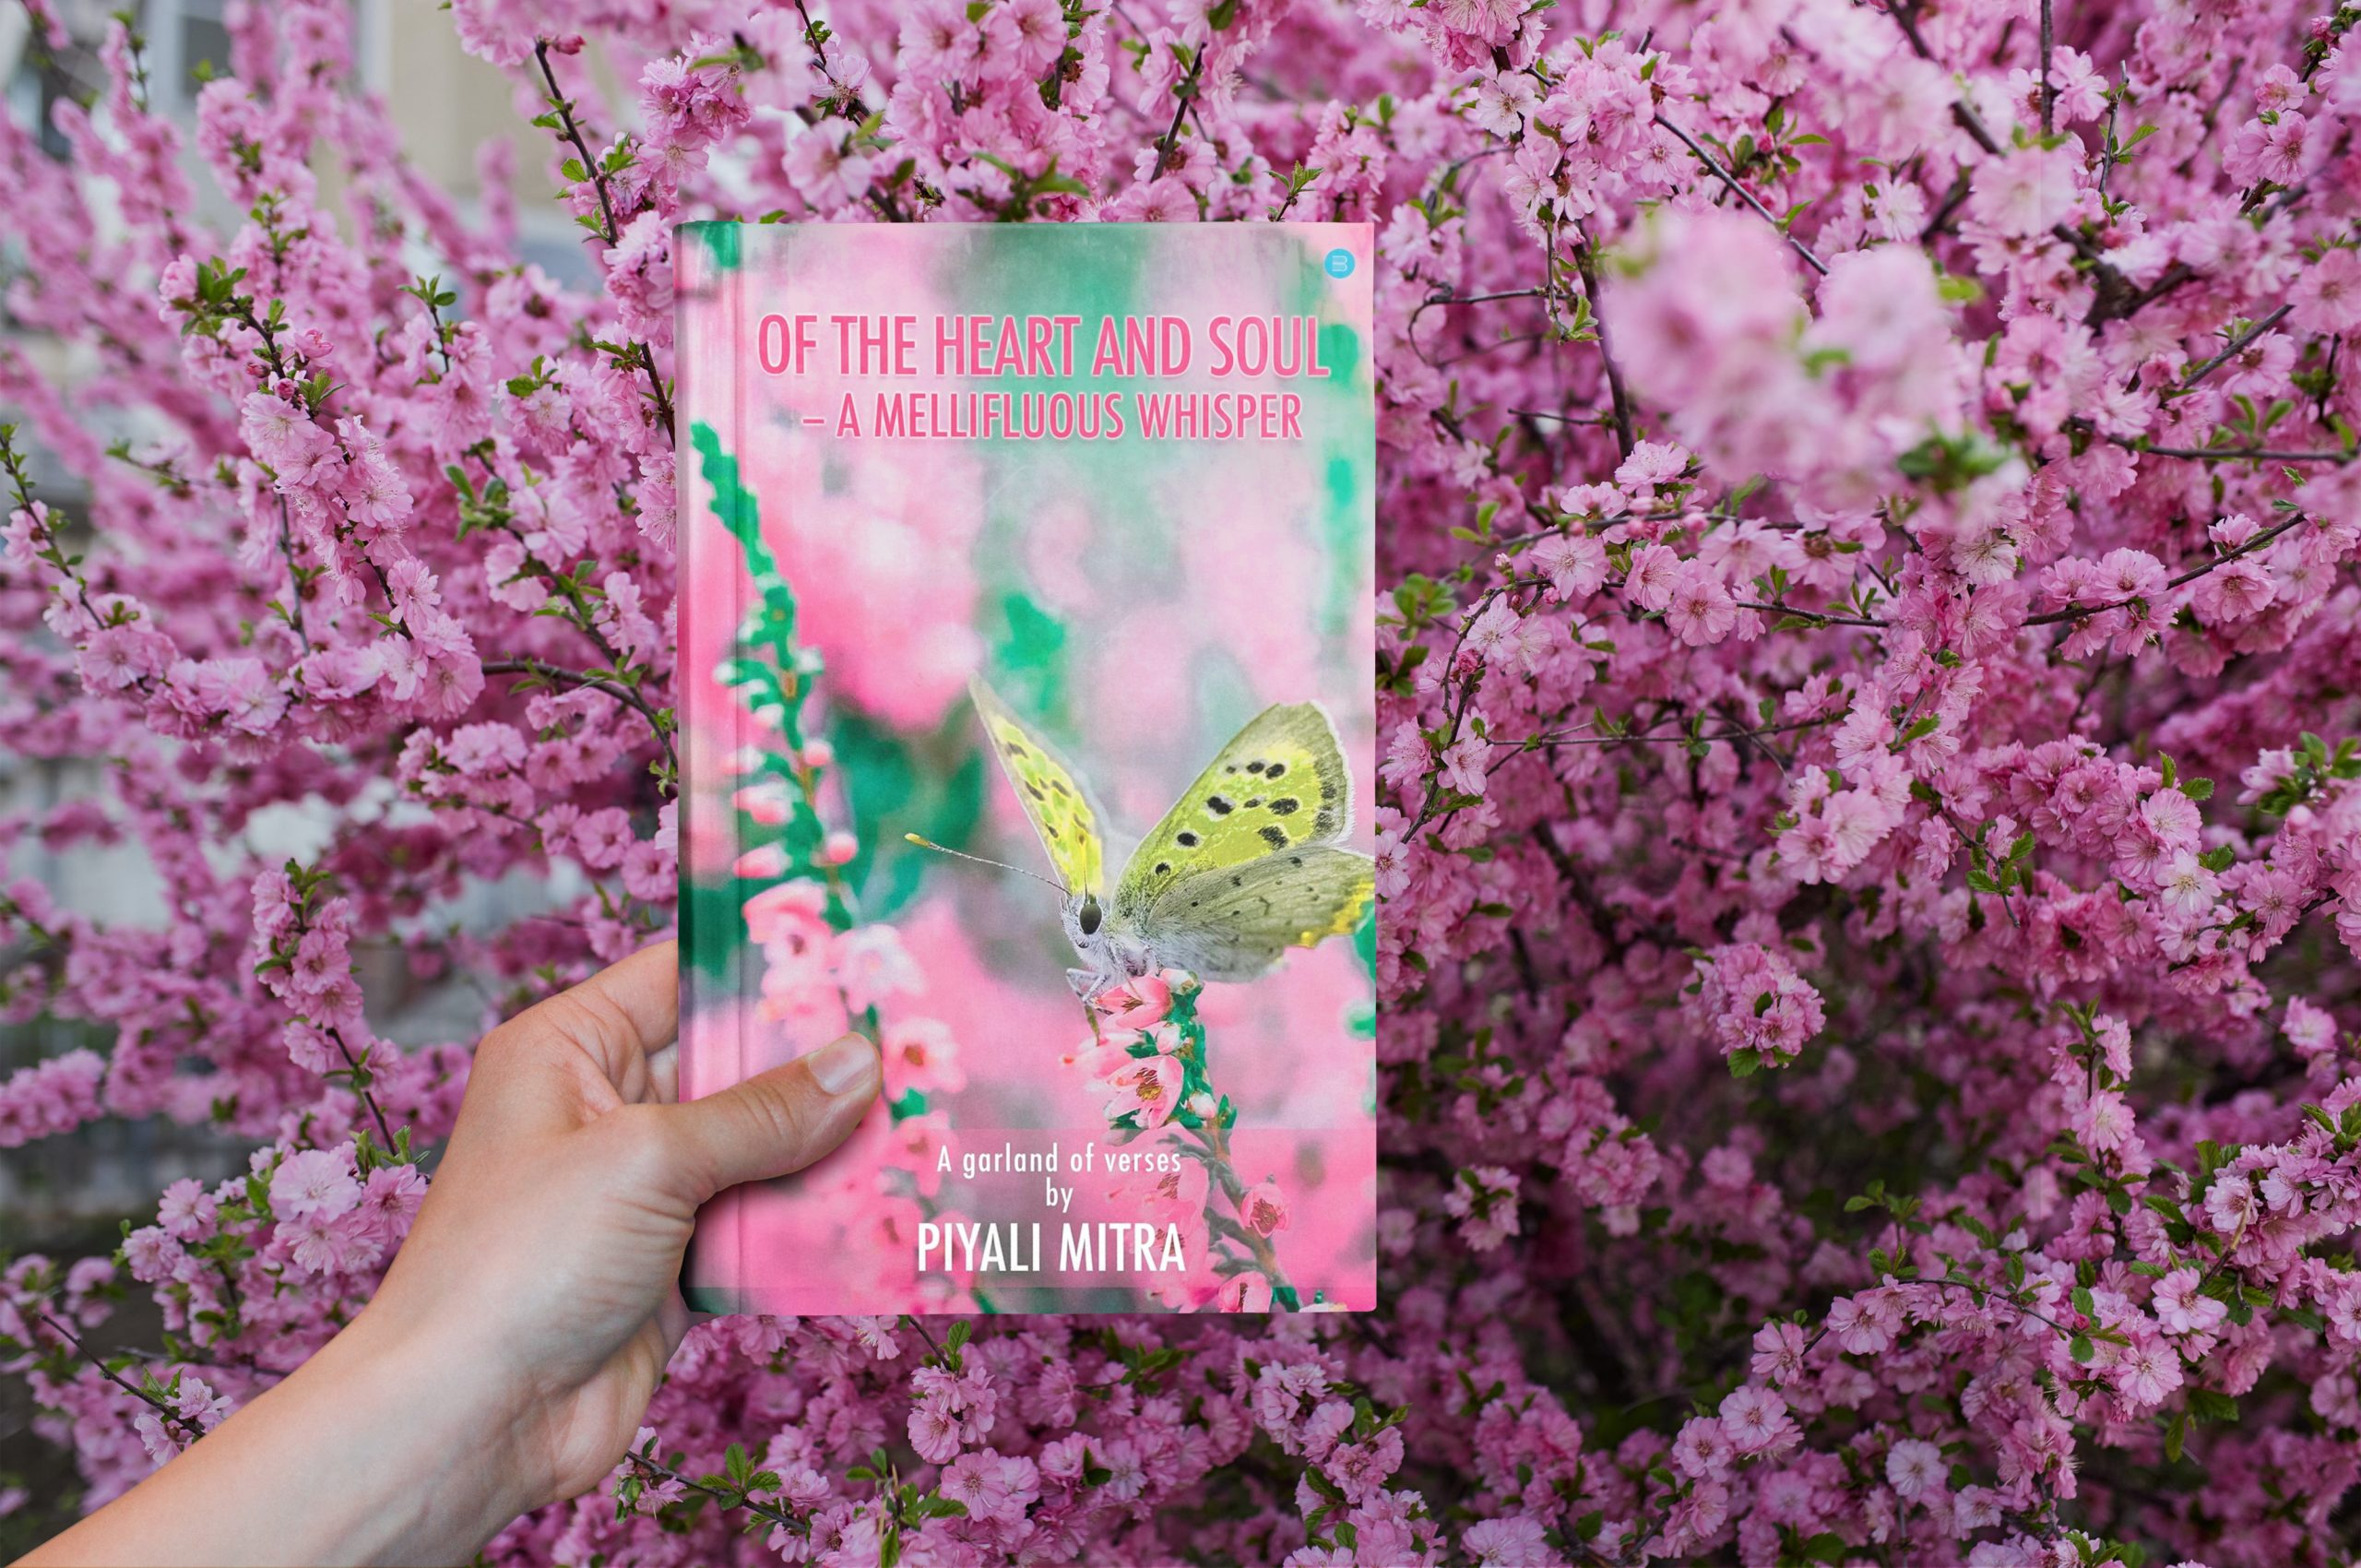 Book Review - Of the Heart and Soul by Piyali Mitra